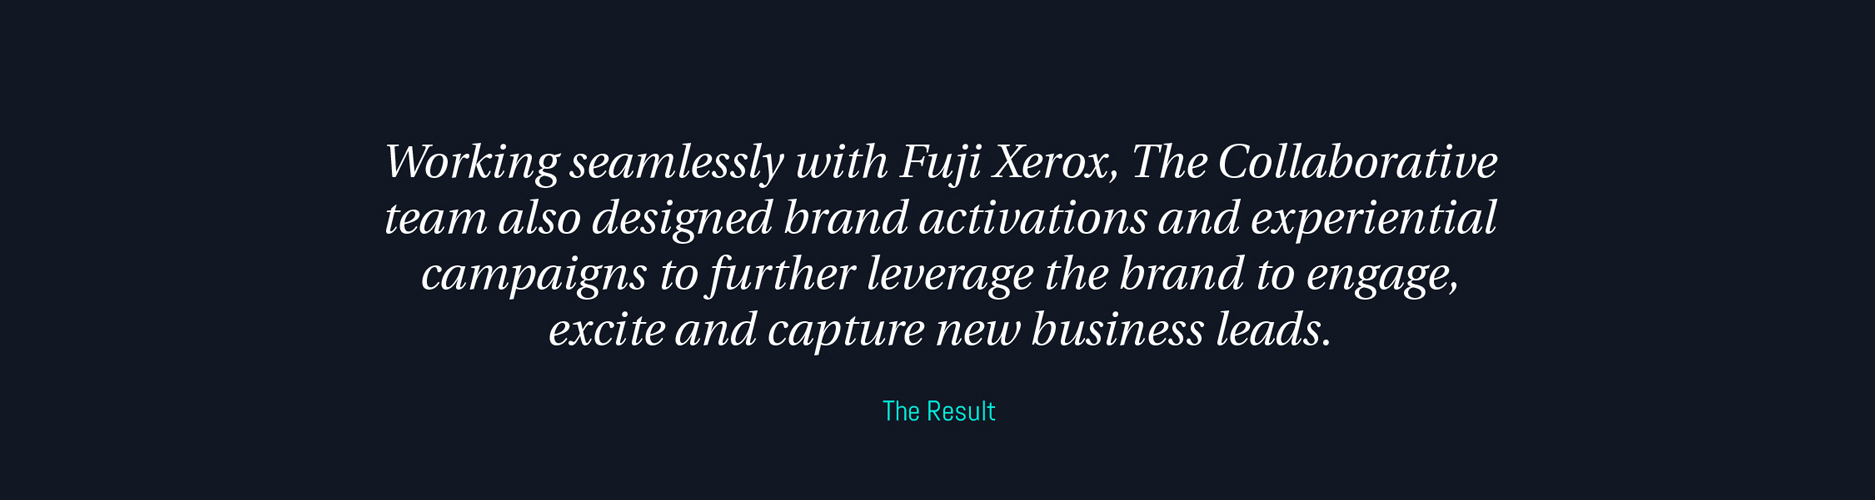 Working seamlessly with Fuji Xerox, The Collaborative team also designed brand activations and experiential campaigns to further leverage the brand to engage excite and capture new business leads.